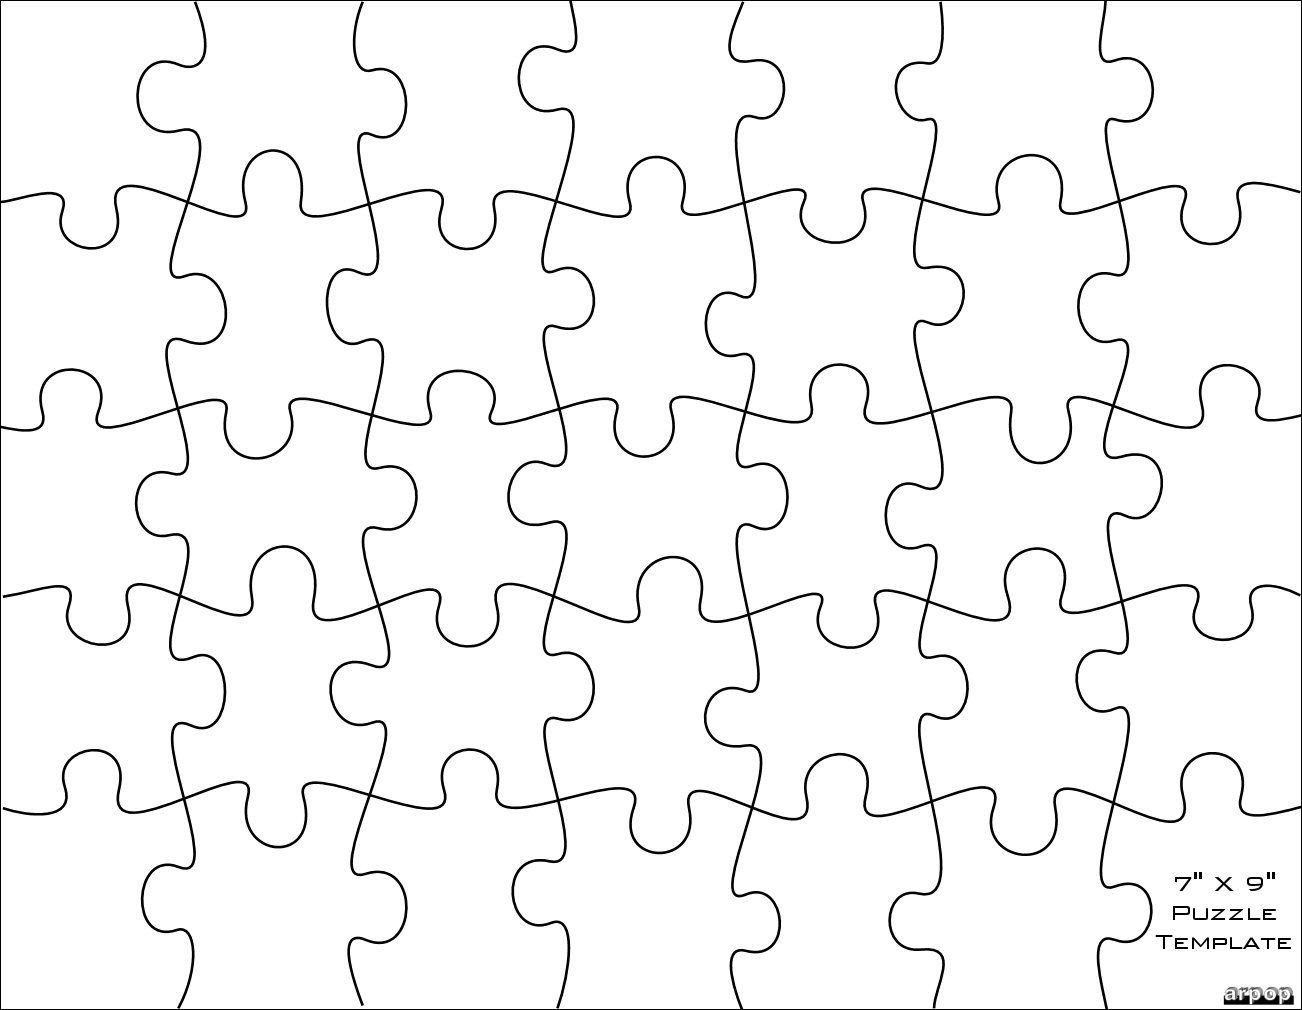 Jigsaw Pattern Templates. I Know I Want To Use It, But I Don't Know - 7 Piece Printable Puzzle